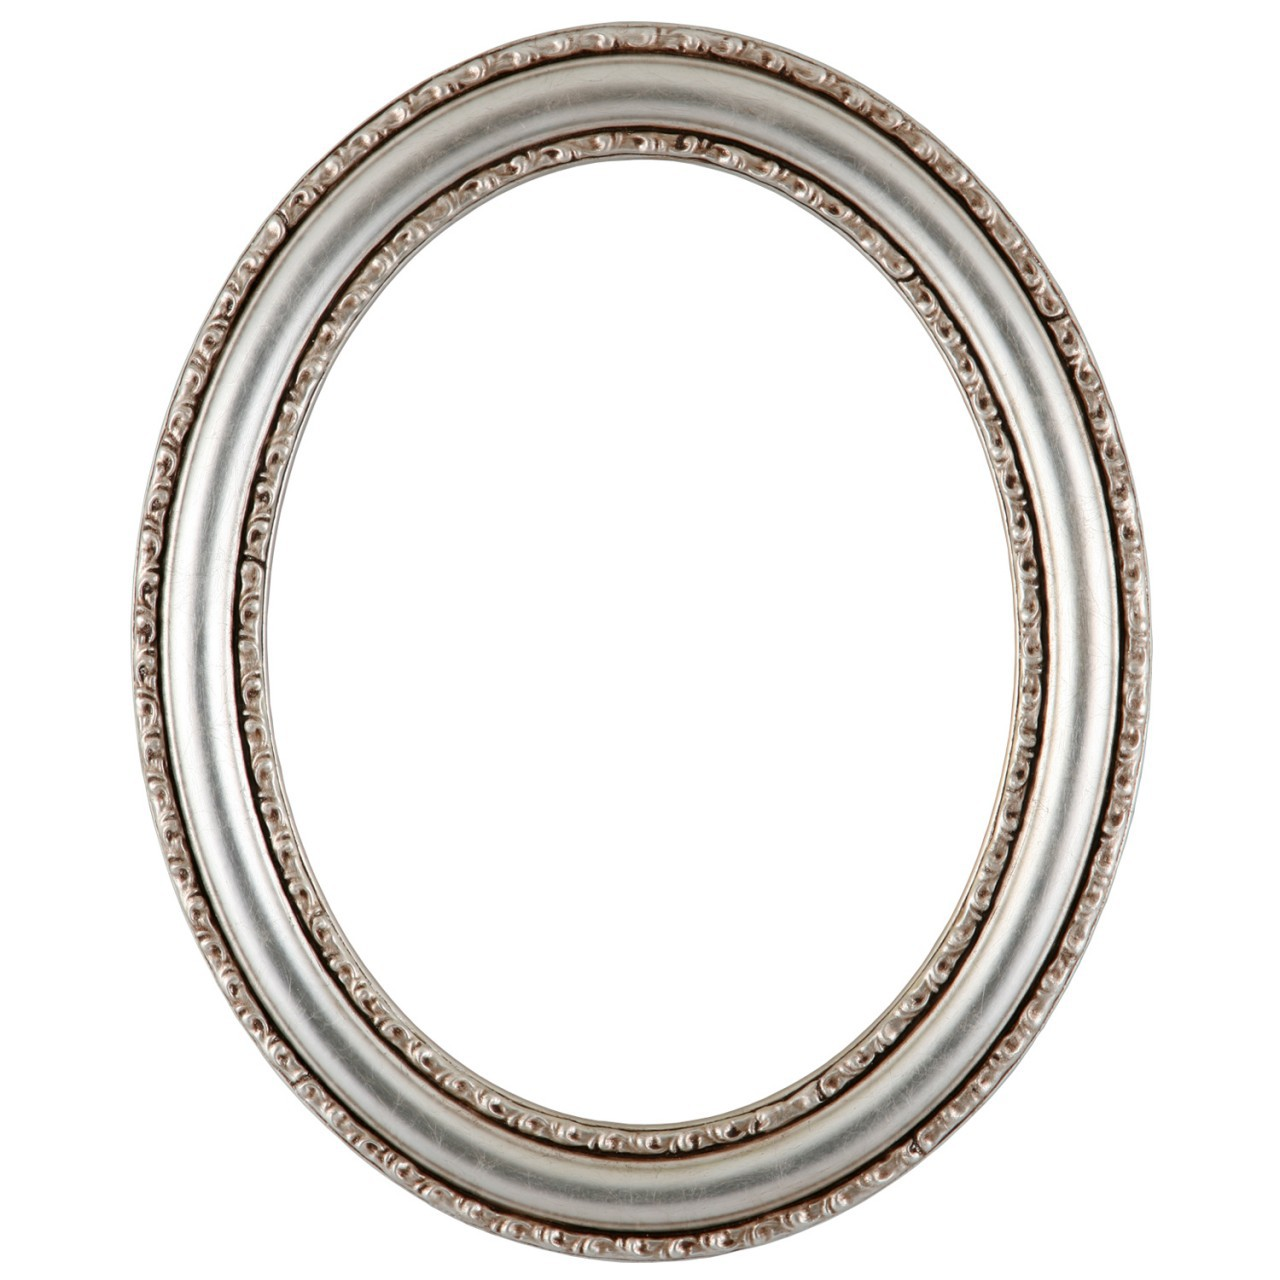 1280x1280 Best Photos Of Antique Oval Picture Frames